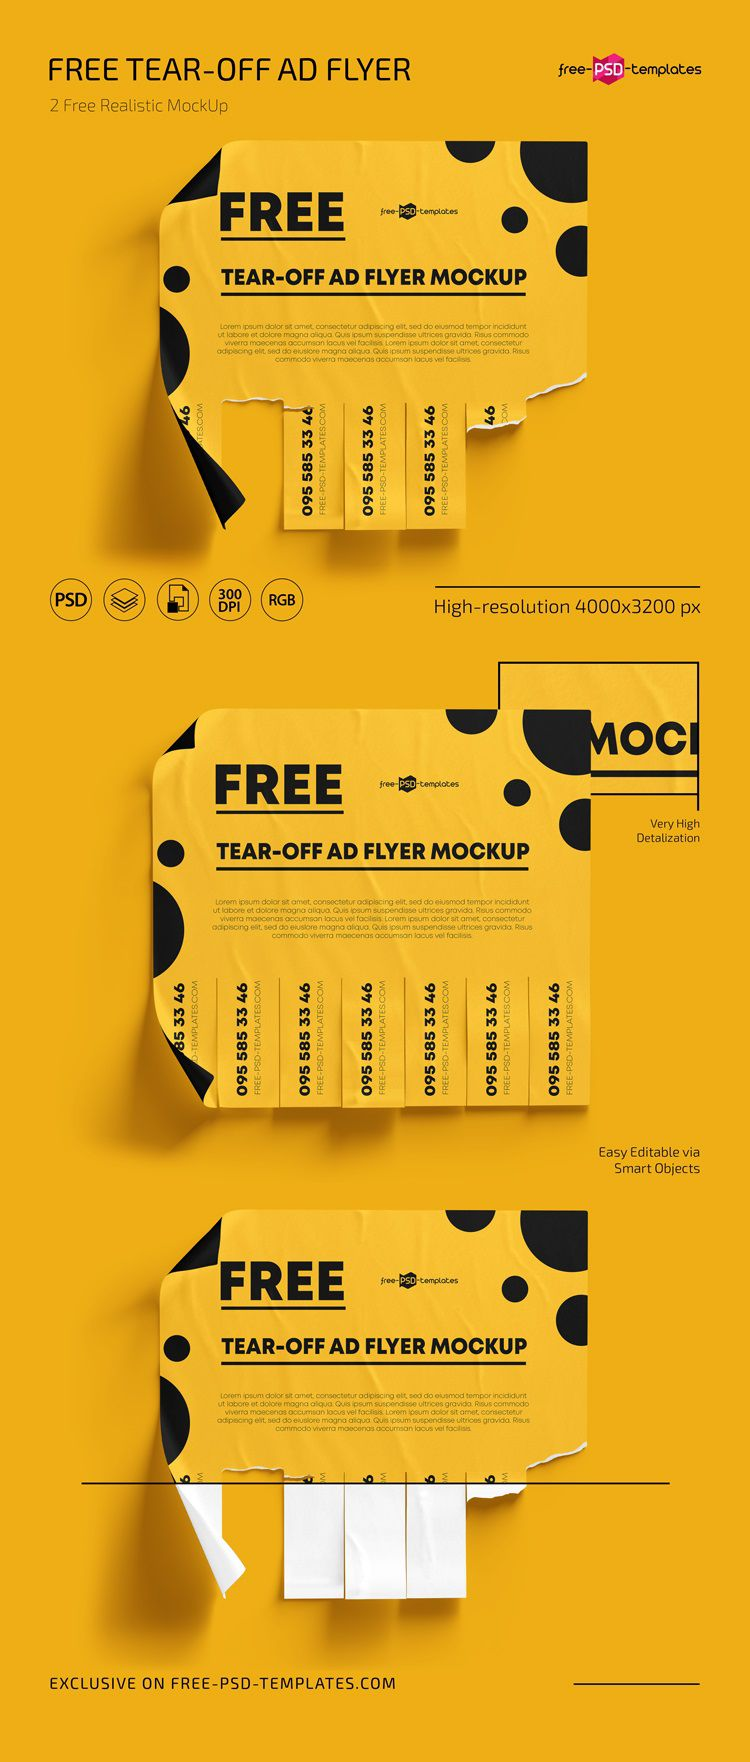 005 Unforgettable Free Tear Off Flyer Template High Resolution  Tear-off For Microsoft Word Printable With TabFull